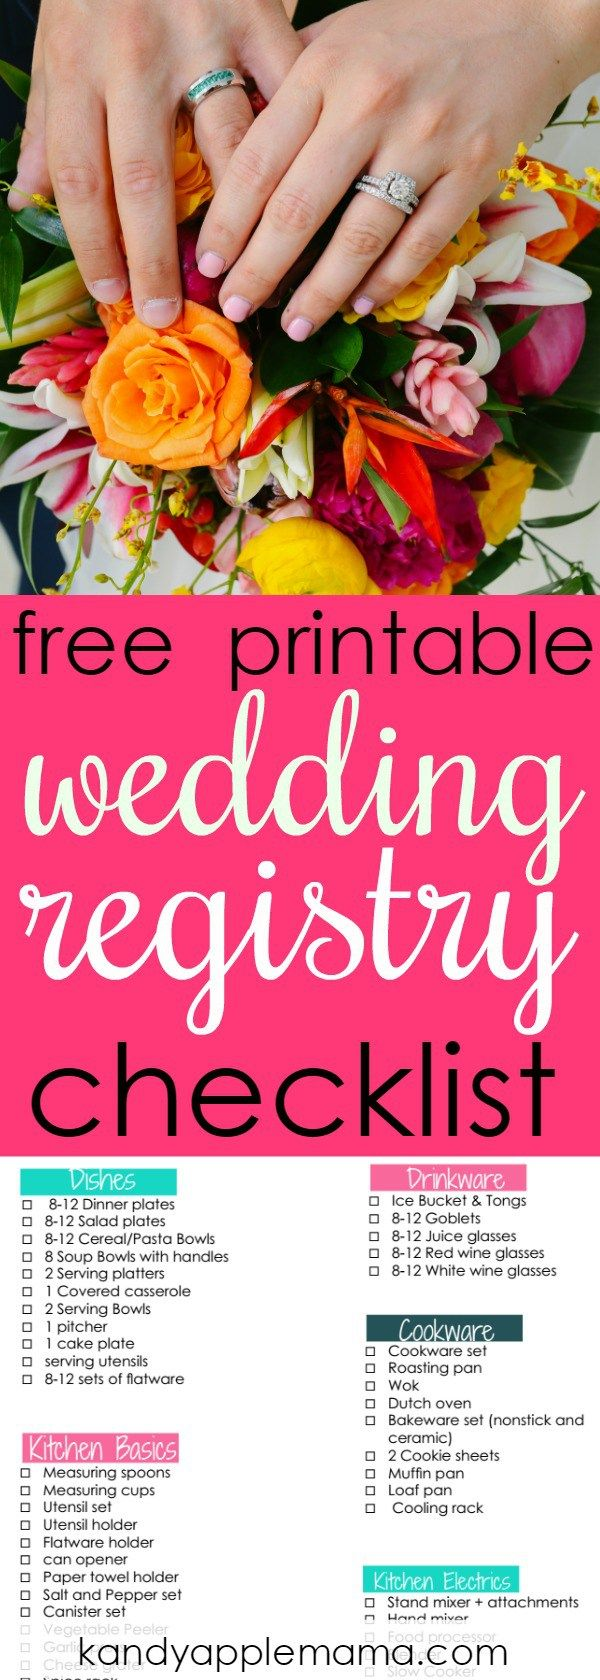 printable bridal registry list%0A urdu shayari for wedding cards in hindi